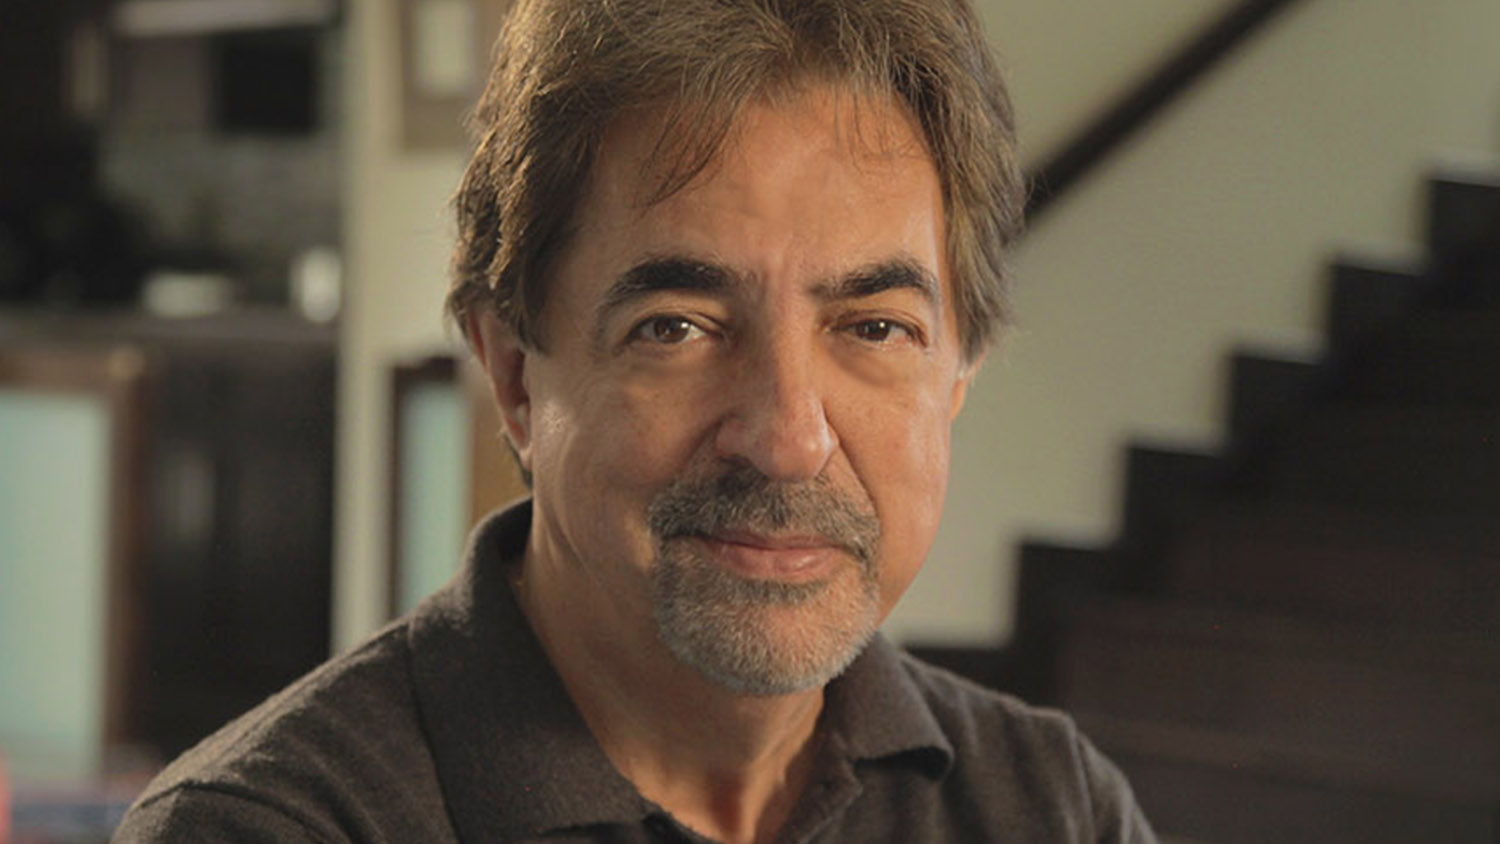 Enter To Win An Autographed Joe Mantegna Photo!